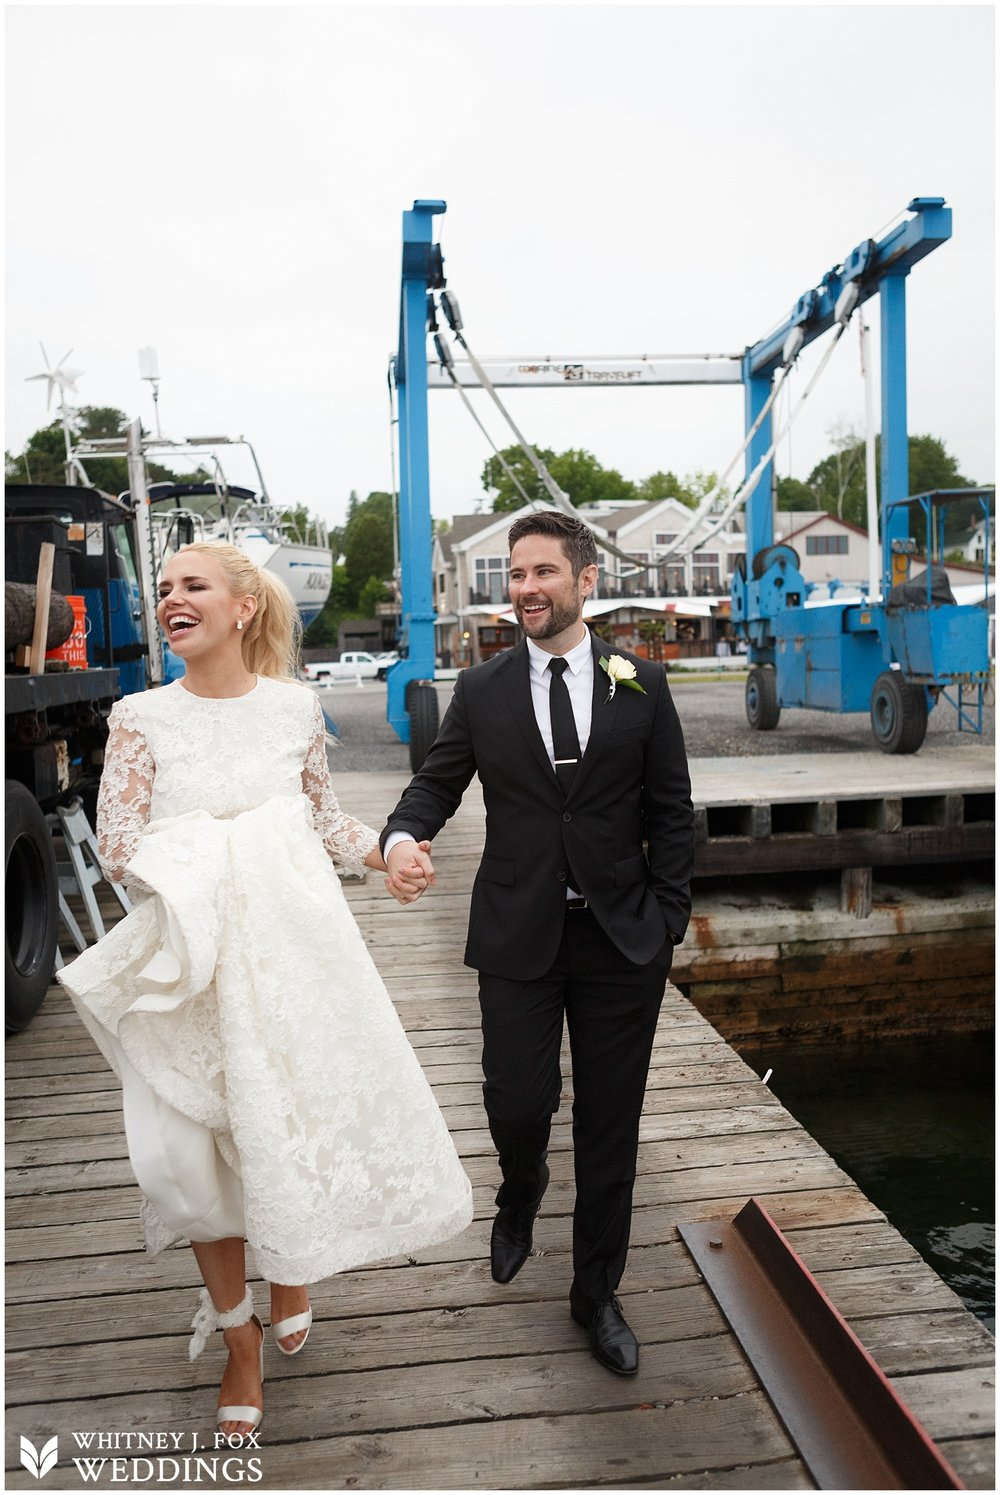 formal_seaside_summer_wedding_dockside_grill_falmouth_maine_photographer_whitney_j_fox_weddings_80.JPG